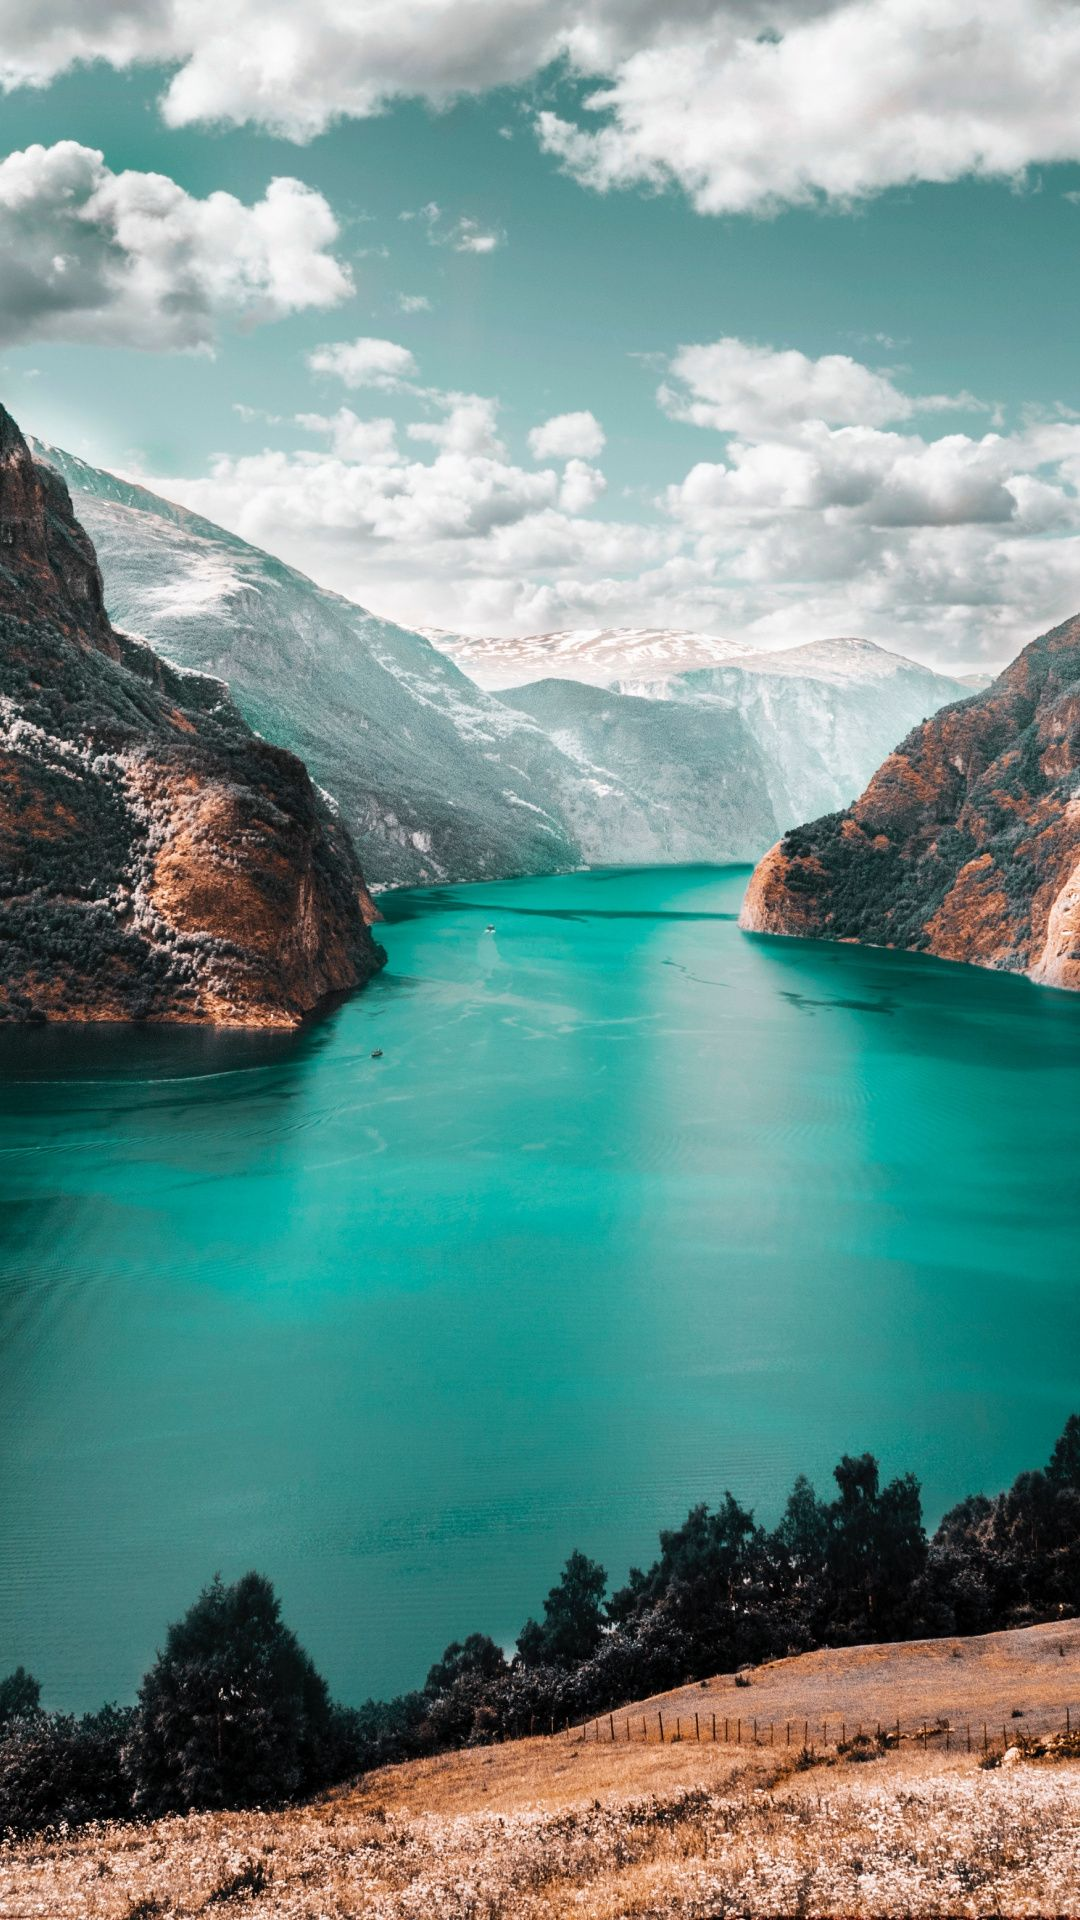 Downaload River Mountains Nature Wallpaper For Screen 1080x1920 Samsung Galaxy S4 S5 Note Sony Scenery Wallpaper Scenery Pictures Google Pixel Wallpaper